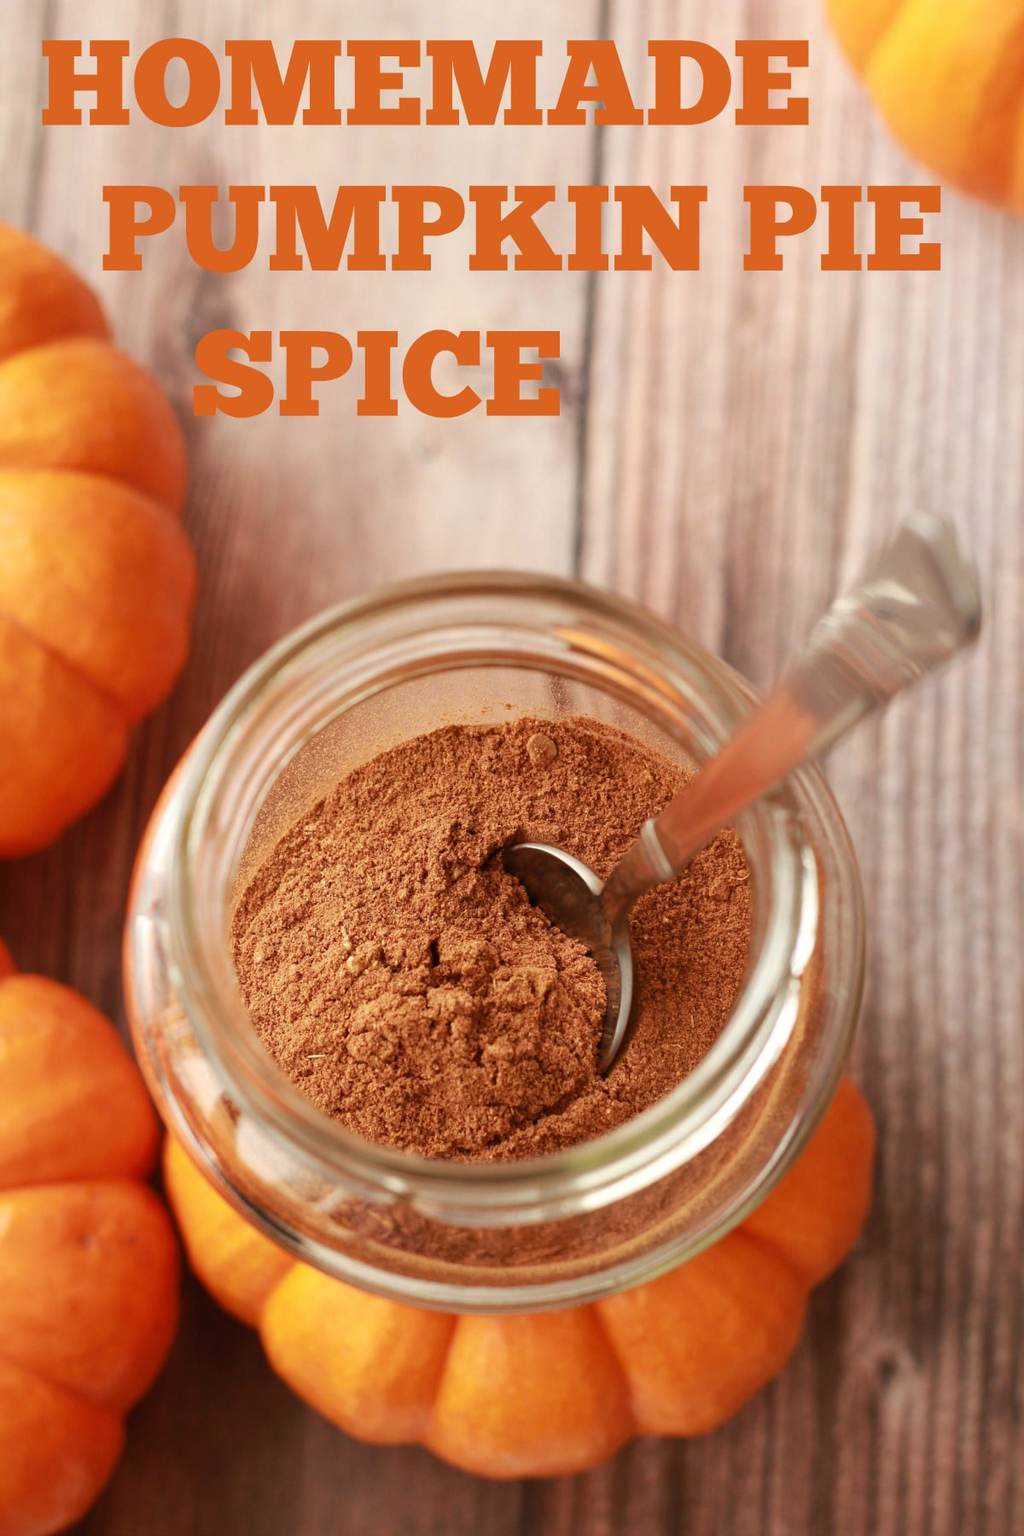 Homemade pumpkin pie spice in a glass jar with a spoon.